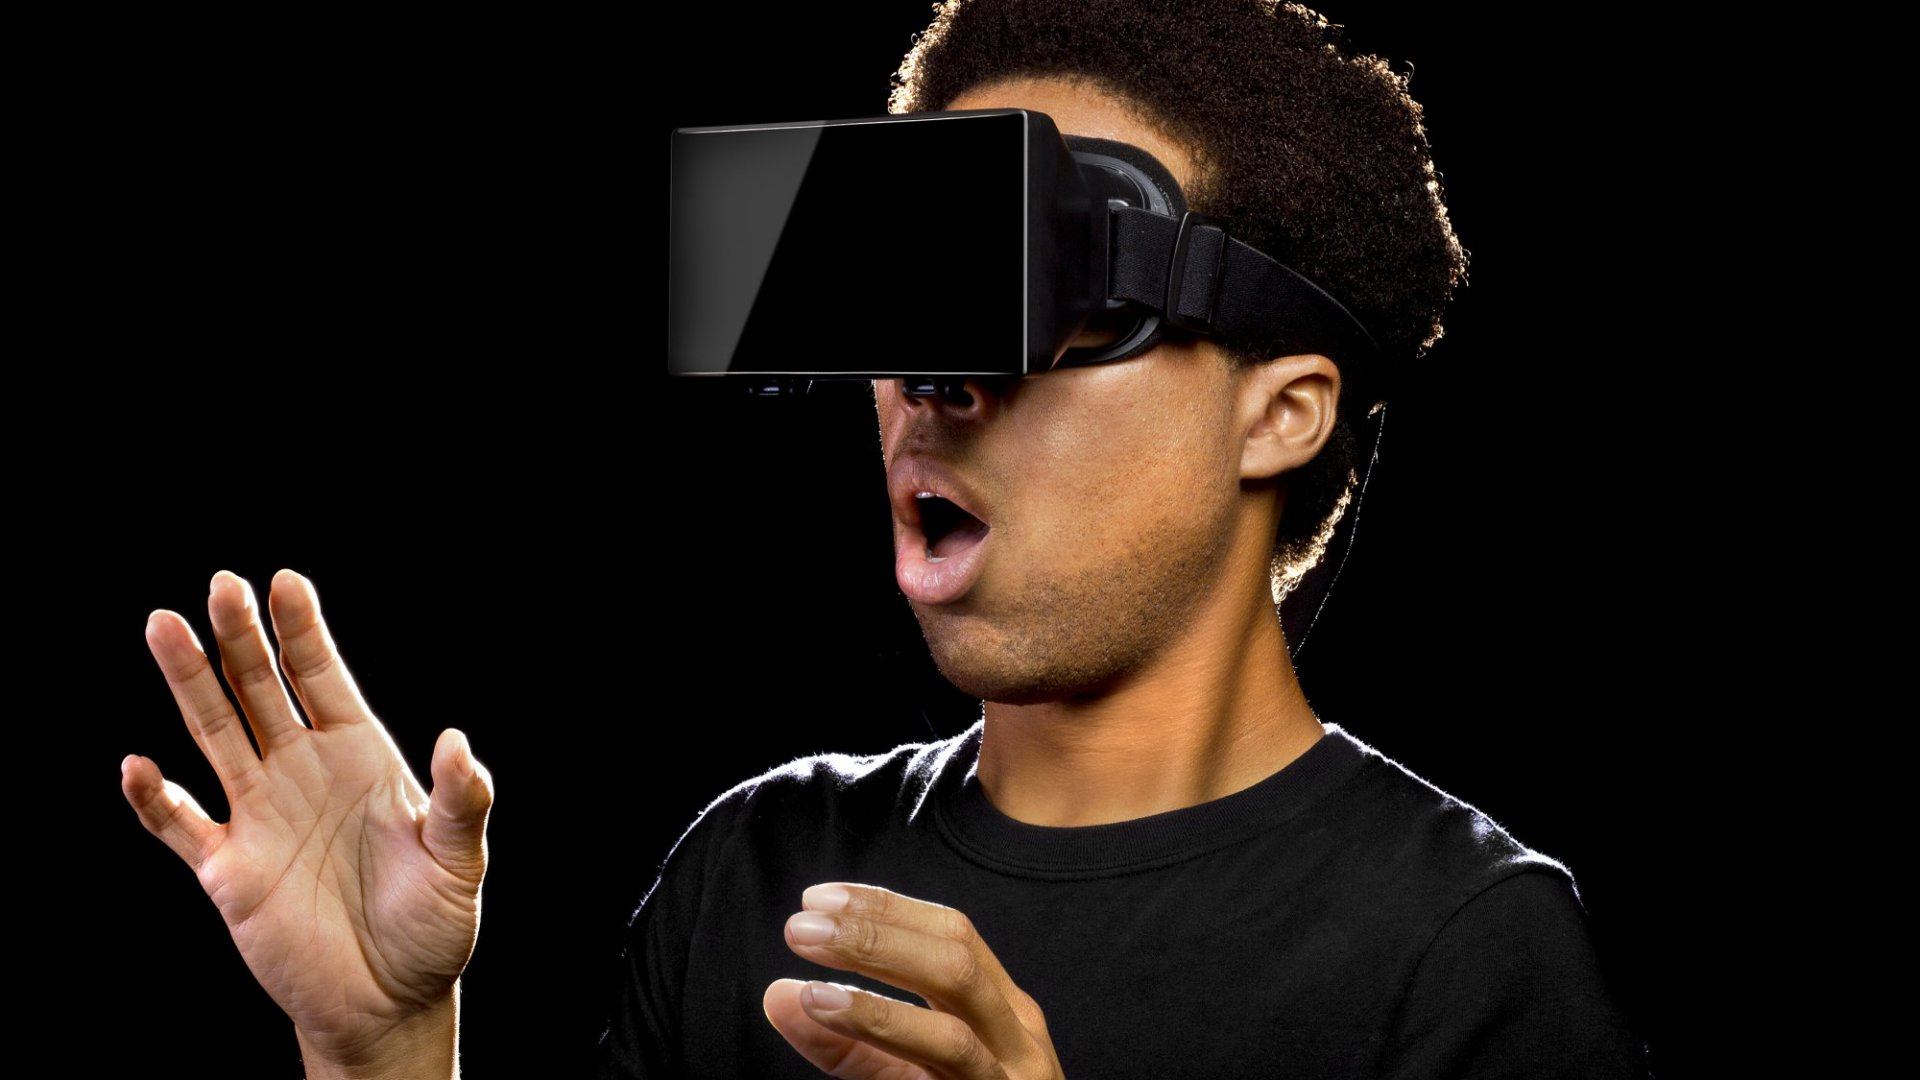 5 Reasons Why 2017 is the Year Virtual Reality Becomes a Thing